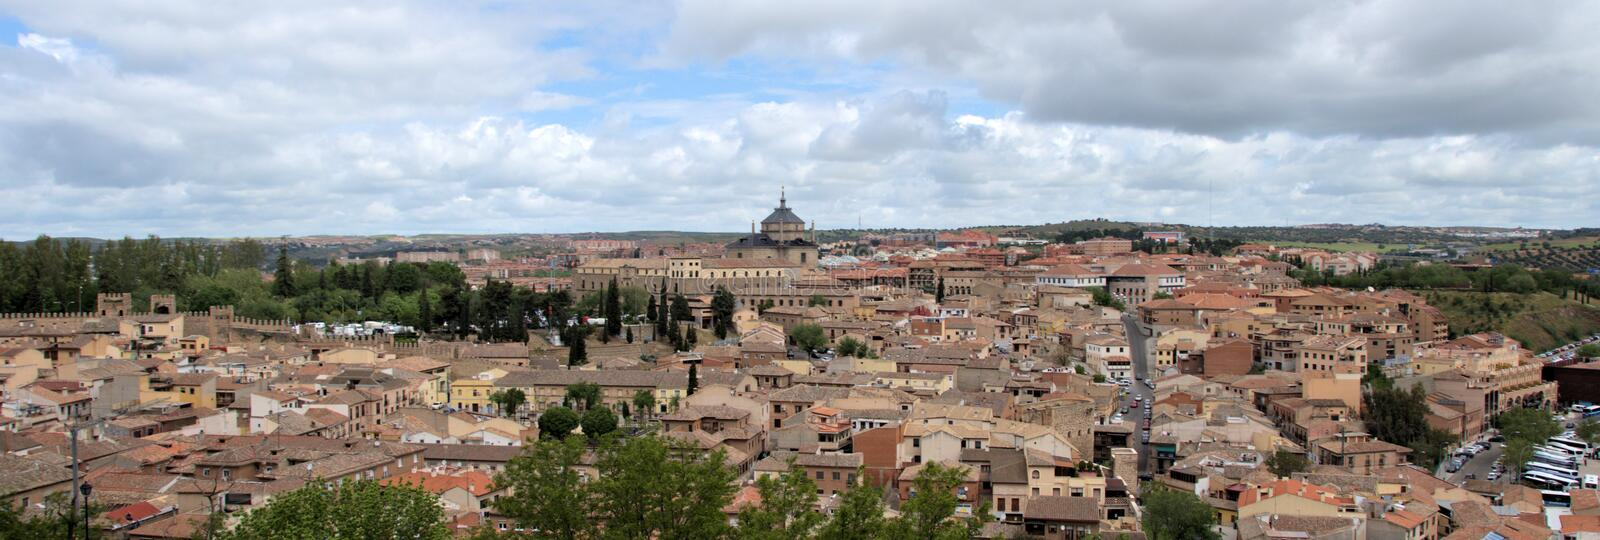 City of Toledo Spain. Beautiful skyline of the city of Toledo Spain royalty free stock photography